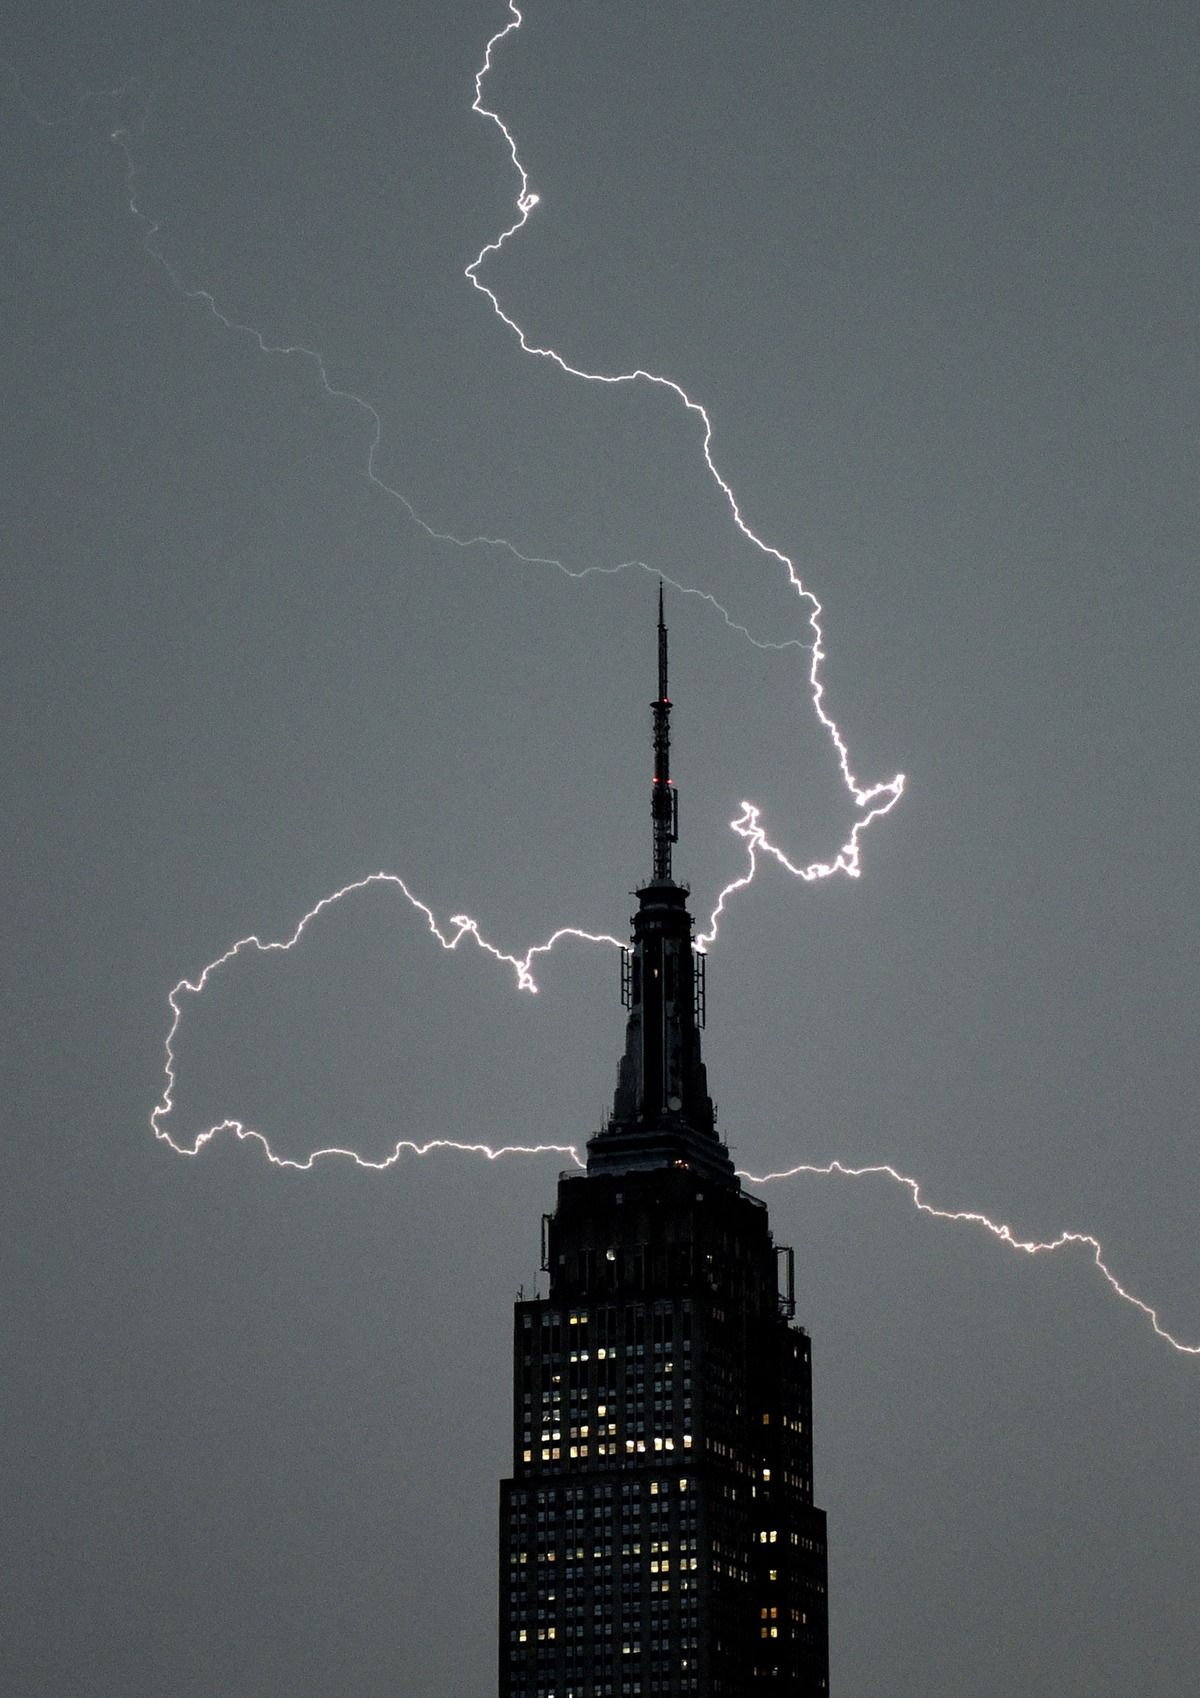 outlet store 3f0bd abfce Lighting strikes over the Empire State Building as a major storm comes in  New York City July 2, 2014.